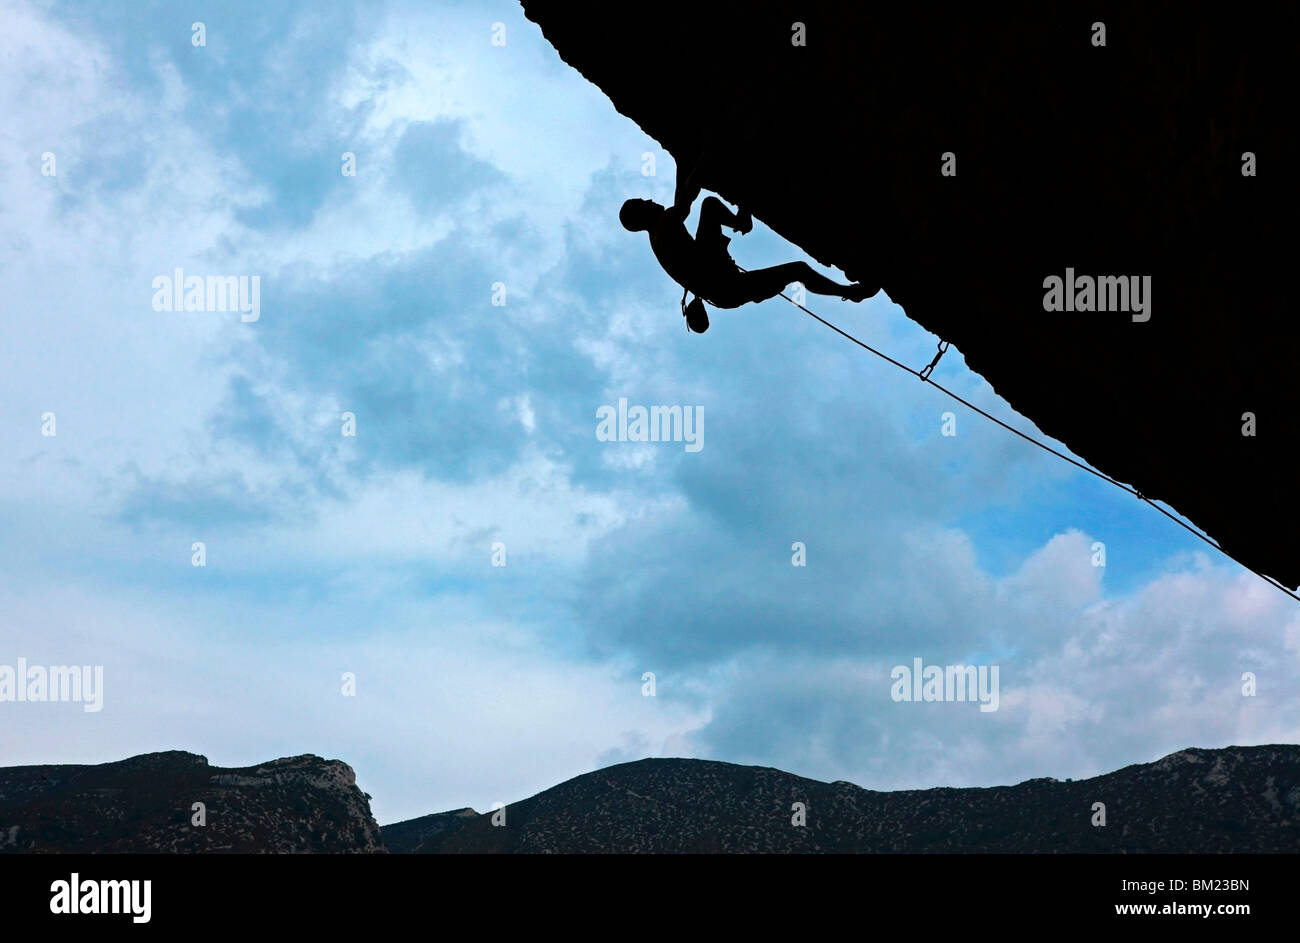 A climber tackles a severely overhanging route in the caves of the Mascun Gorge, Sierra de Guara mountains, Aragon, - Stock Image